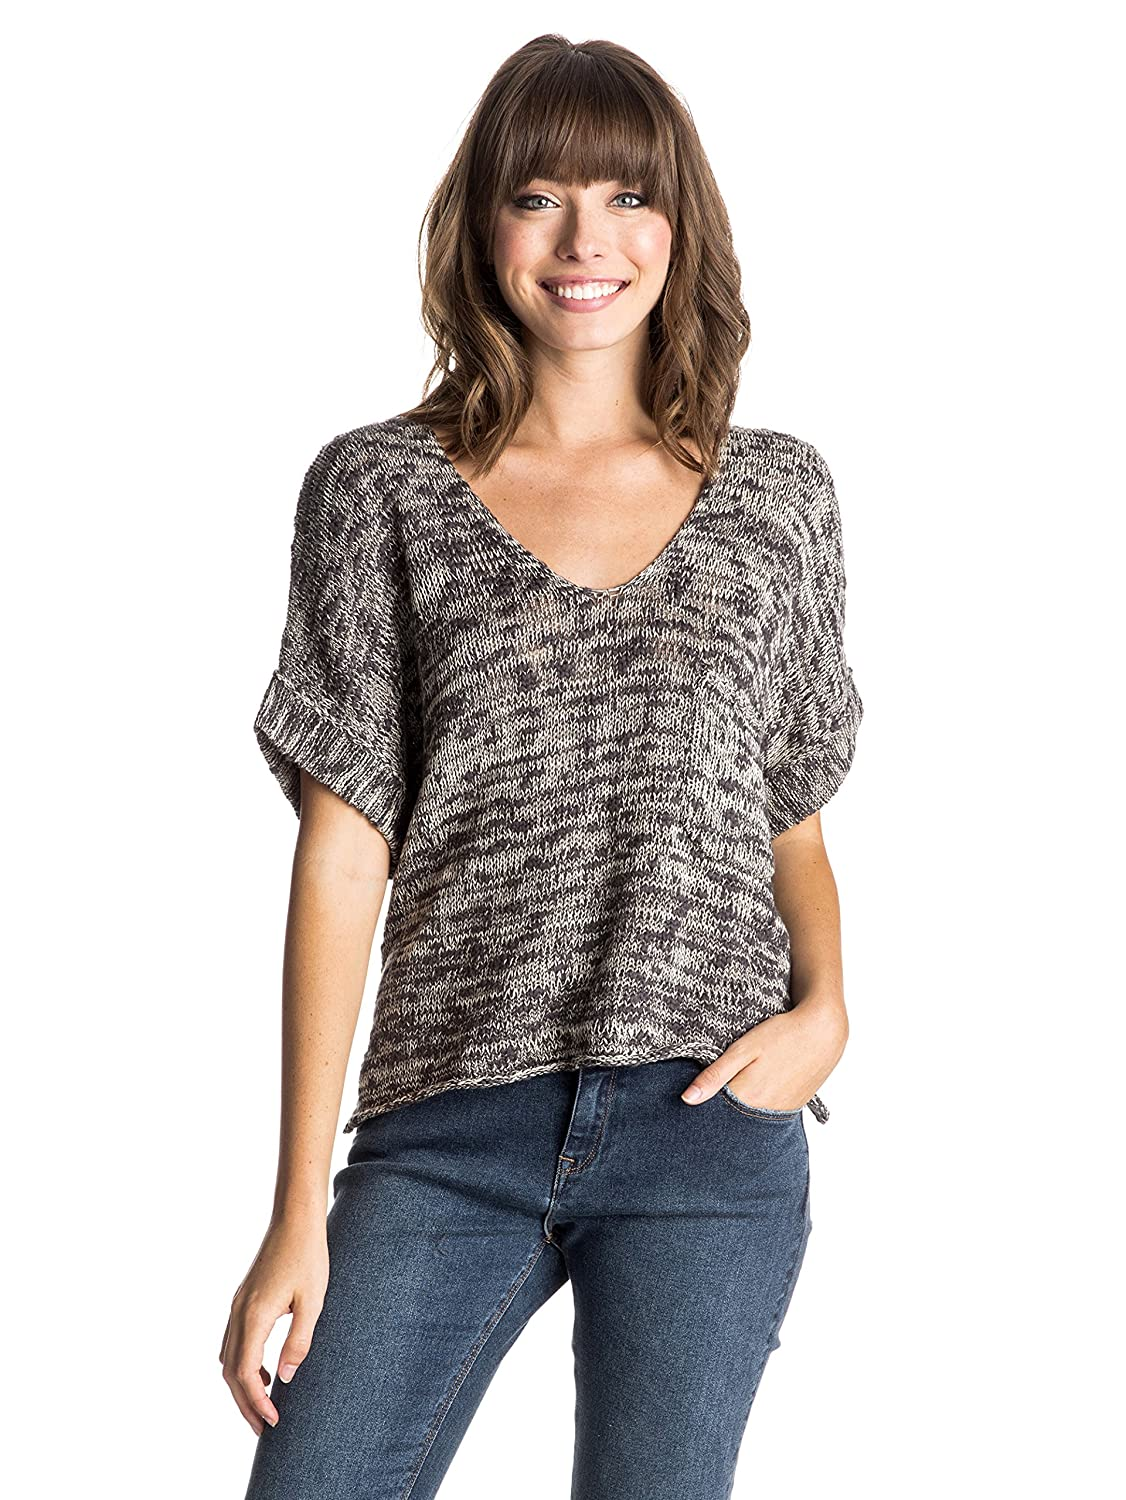 Roxy Lovely J SWTR KRY0 - Camiseta para mujer, color gris